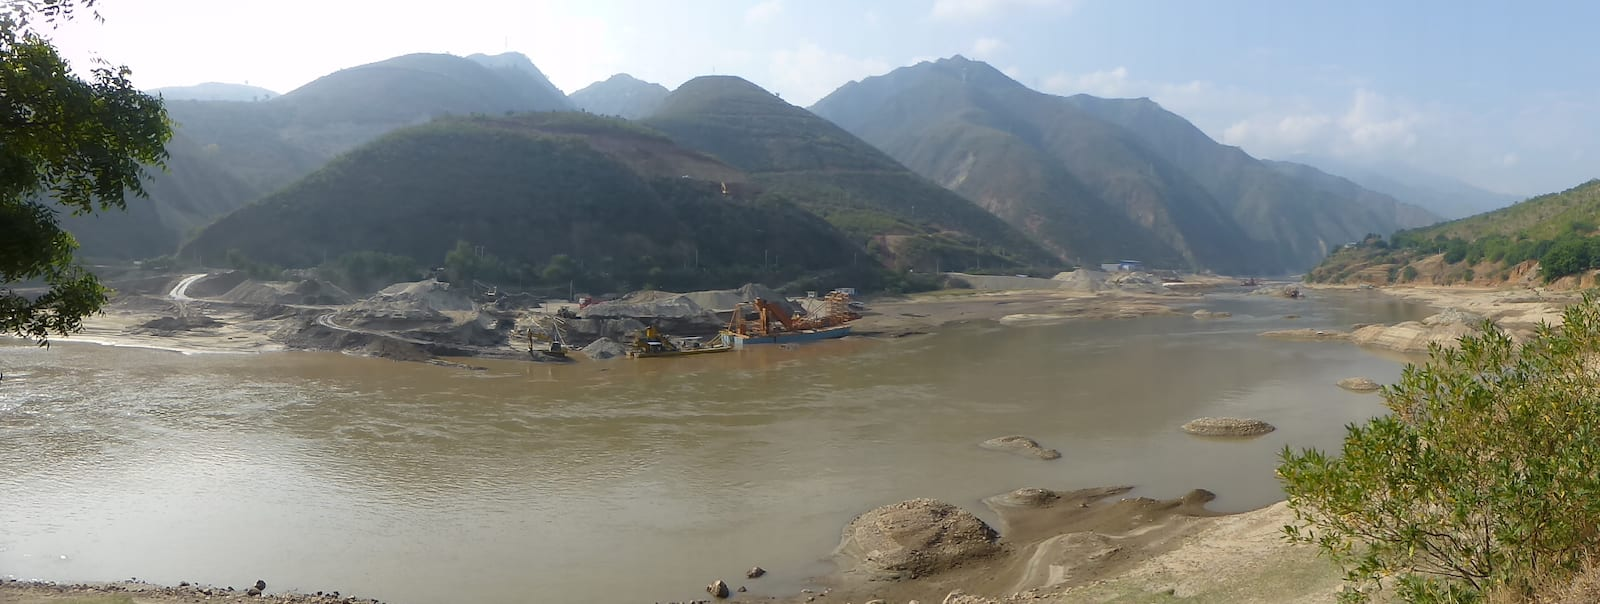 Image of the Red River in Vietnam